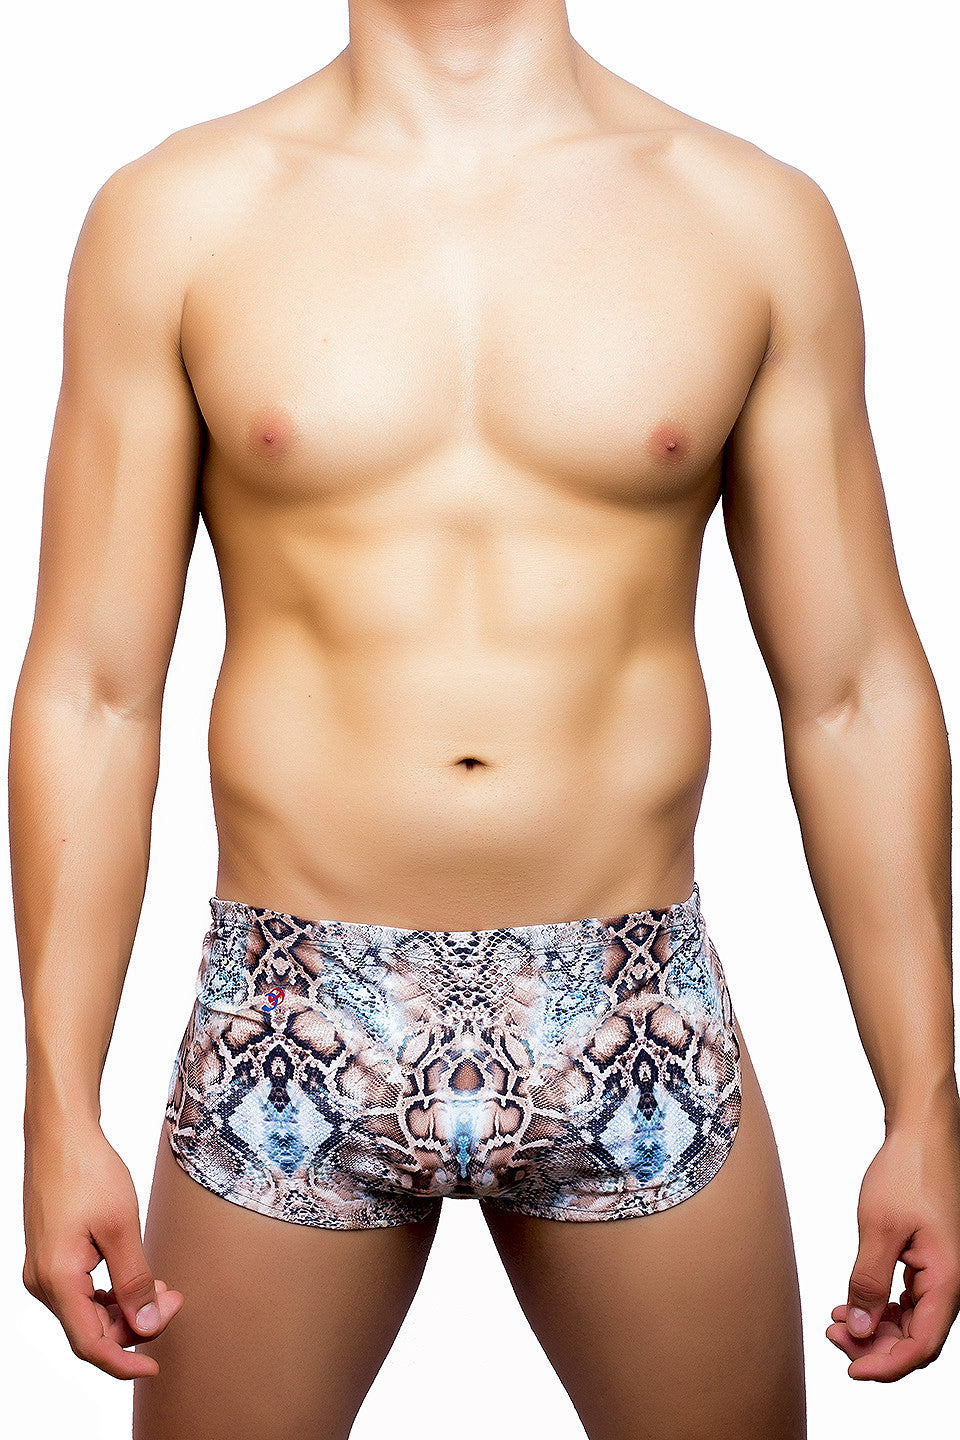 Joe Snyder Print Short - Malebasics Canada - 3